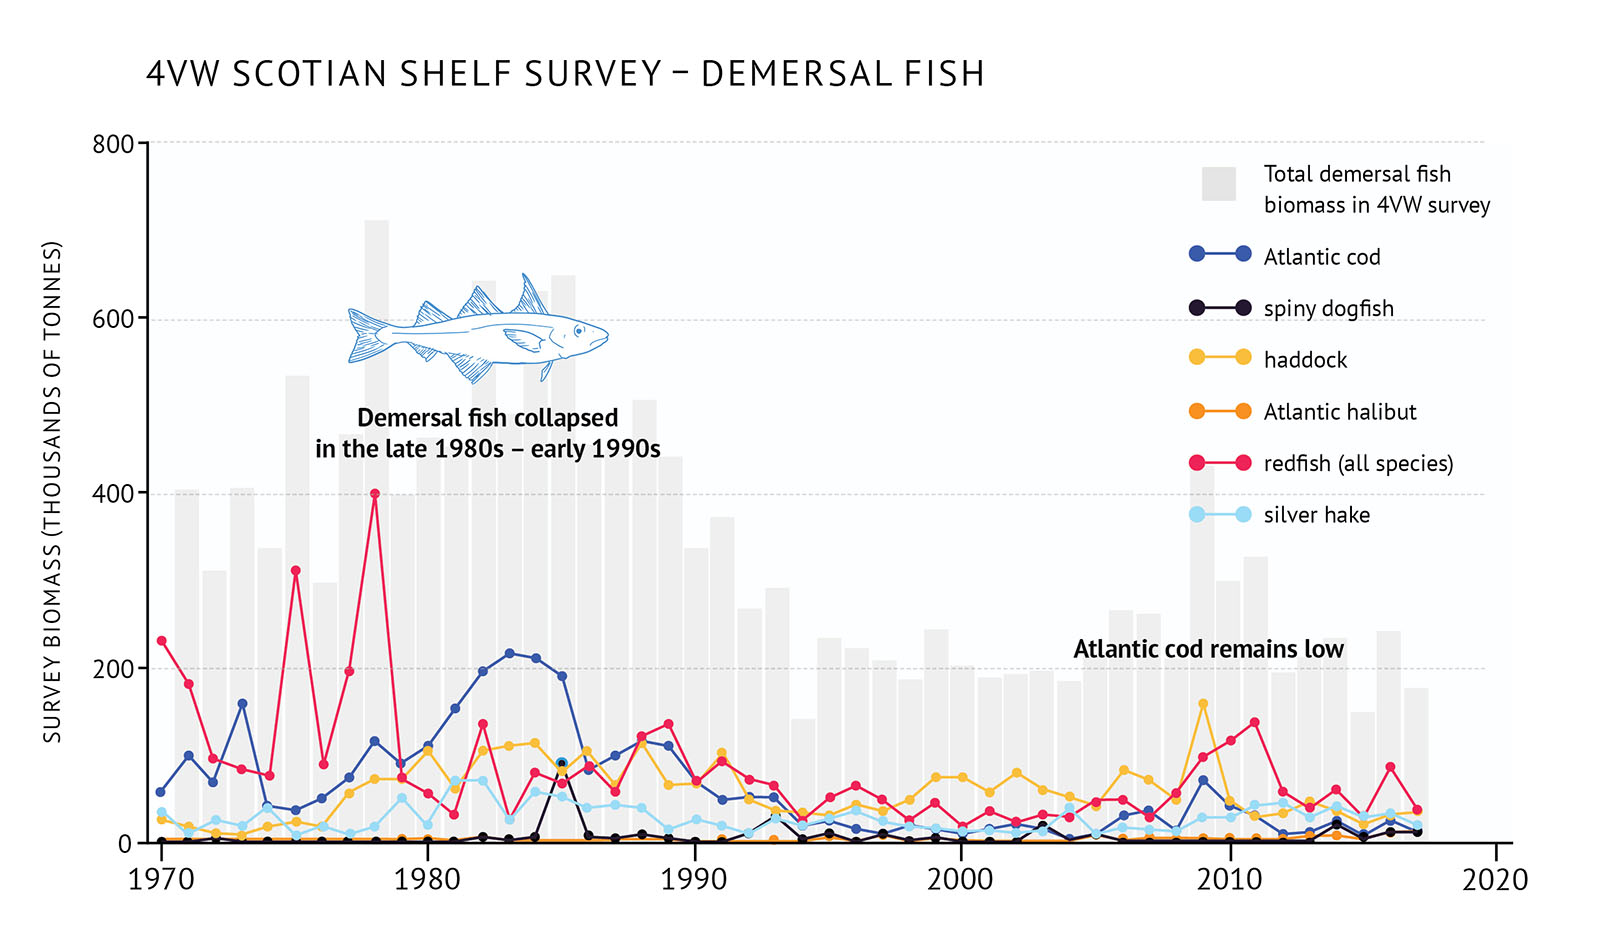 "Figure 27: 4VW (eastern Scotian Shelf) survey biomass for total demersal fish and individual species. A bar and line graph illustrates the survey biomass for total demersal fish as well as individual species for the 4VW NAFO zone of the eastern Scotian Shelf. Text above the graph says ""4VW Scotian Shelf Survey – Demersal Fish"". The vertical axis on the left shows the survey biomass in units of thousands of tonnes from 0 to 800 in increments of 200. The bottom horizontal axis shows the years between 1970 and 2020 in 10 year increments. The biomass for total demersal fish in the 4VW survey is represented by grey vertical bars. The total survey biomass increases from approximately 400 thousand tonnes in 1970 to approximately 700 thousand tonnes in 1979. There is a large decline in the late 1980s and early 1990s to approximately 200 thousand tonnes. After that it is low with some fluctuation. The last year of data is 2017. Six demersal fish species are represented by different coloured lines on the same graph. A legend appears on the right. A dark blue data line illustrates the survey biomass trend for Atlantic cod. A black data line illustrates the survey biomass trend for spiny dogfish. A yellow data line illustrates the survey biomass trend for haddock. An orange data line illustrates the survey biomass trend for Atlantic halibut. A red data line illustrates the survey biomass trend for redfish (all species). A light blue data line illustrates the survey biomass trend for silver hake. Atlantic cod biomass peaks at approximately 200 thousand tonnes in the early 1980s. It then decreases in the late 1980s and early 1990s and remains low to 2017. Redfish biomass is higher than other species in the 1970s with fluctuations. It peaks at near 400 thousand tonnes in the late 1970s, but then decreases in the 1980s to near 100 thousand tonnes and lower again in the 1990s. In the late 2000s and early 2010s it rises and then declines again. Haddock biomass increases to near 100 thousand tonnes in the late 1970s and decreases in the early 1990s. It remains at that level with some fluctuations until 2017. Silver hake increases during the 1980s when it is between 50 and 100 thousand tonnes, but then declines in the late 1980s and early 1990s. It increases modestly in the 2010s. Spiny dogfish and Atlantic halibut have very low biomass compared to the other species on the graph. Spiny dogfish shows no trend and Atlantic halibut biomass increases slightly in the 2010s. A small, light blue outline-drawing of a haddock is placed on the graph overlapping the vertical bars on the top to the left hand-side. Below the drawing there is text which states ""Demersal fish collapsed in the late 1980s – early 1990s"". Another line of text lies to the right hand-side of the graph just overlapping the top of the vertical bars which says ""Atlantic cod remains low""."